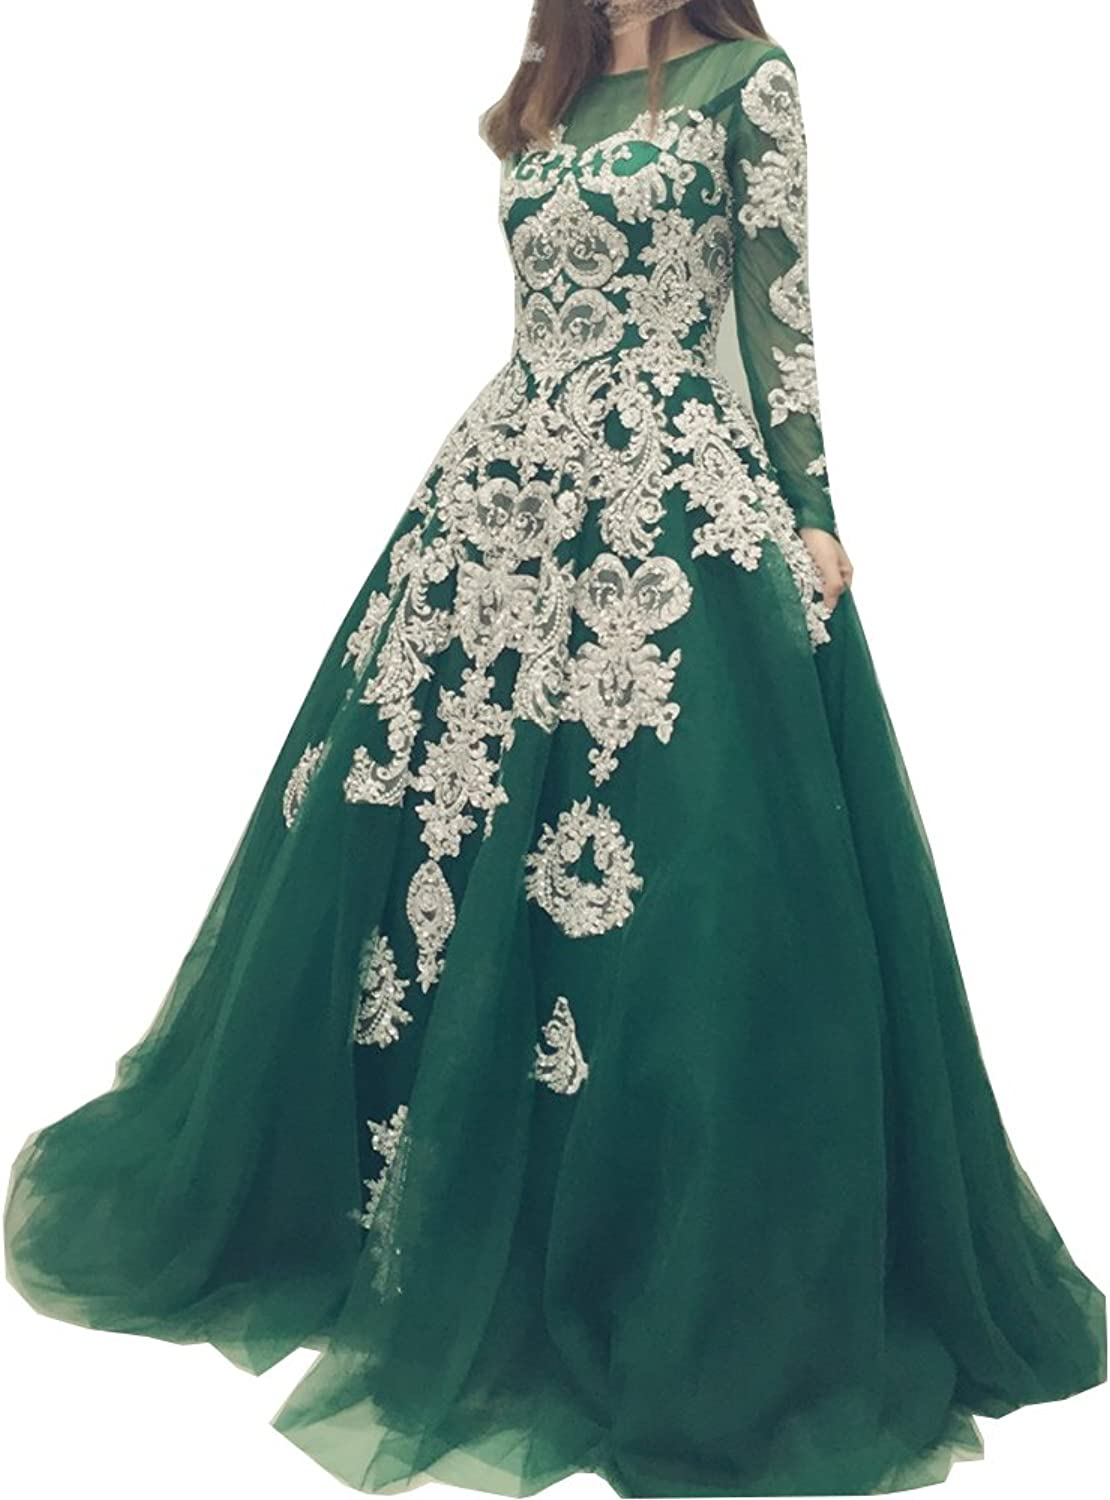 Chenghouse Ball Gown Prom Dresses Appliques Long Sleeves Prom Evening Dresses